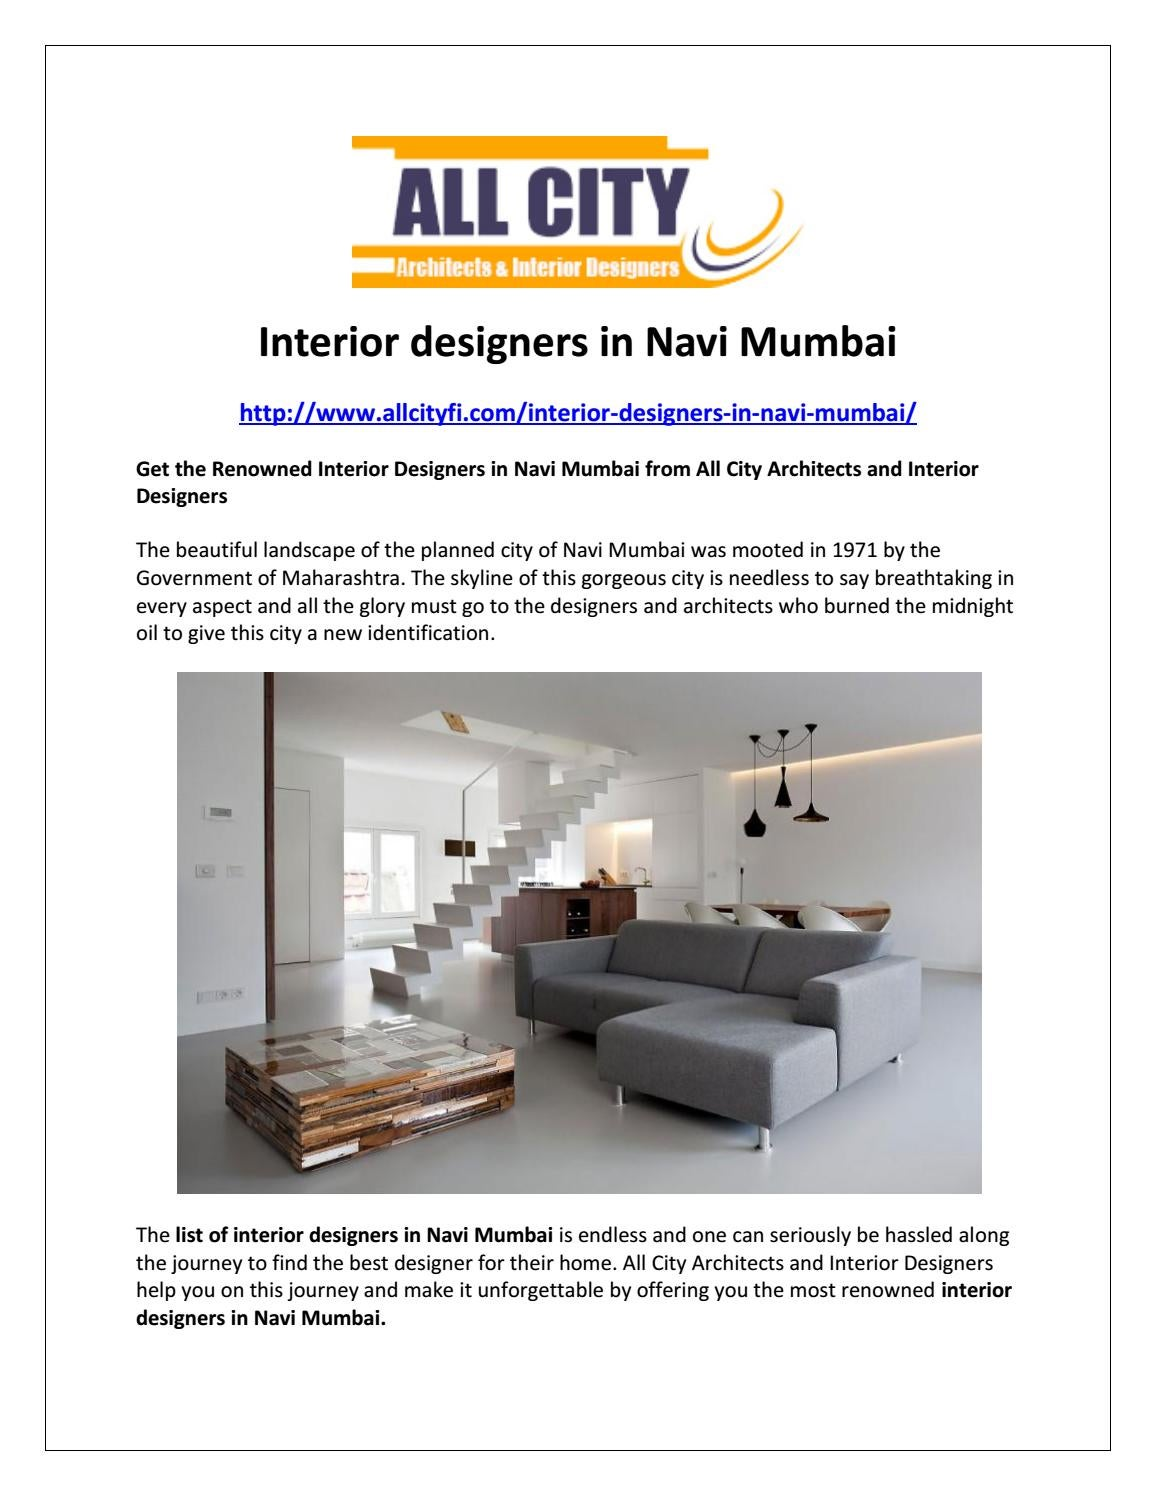 Interior Designers In Navi Mumbai By Mona95 Issuu